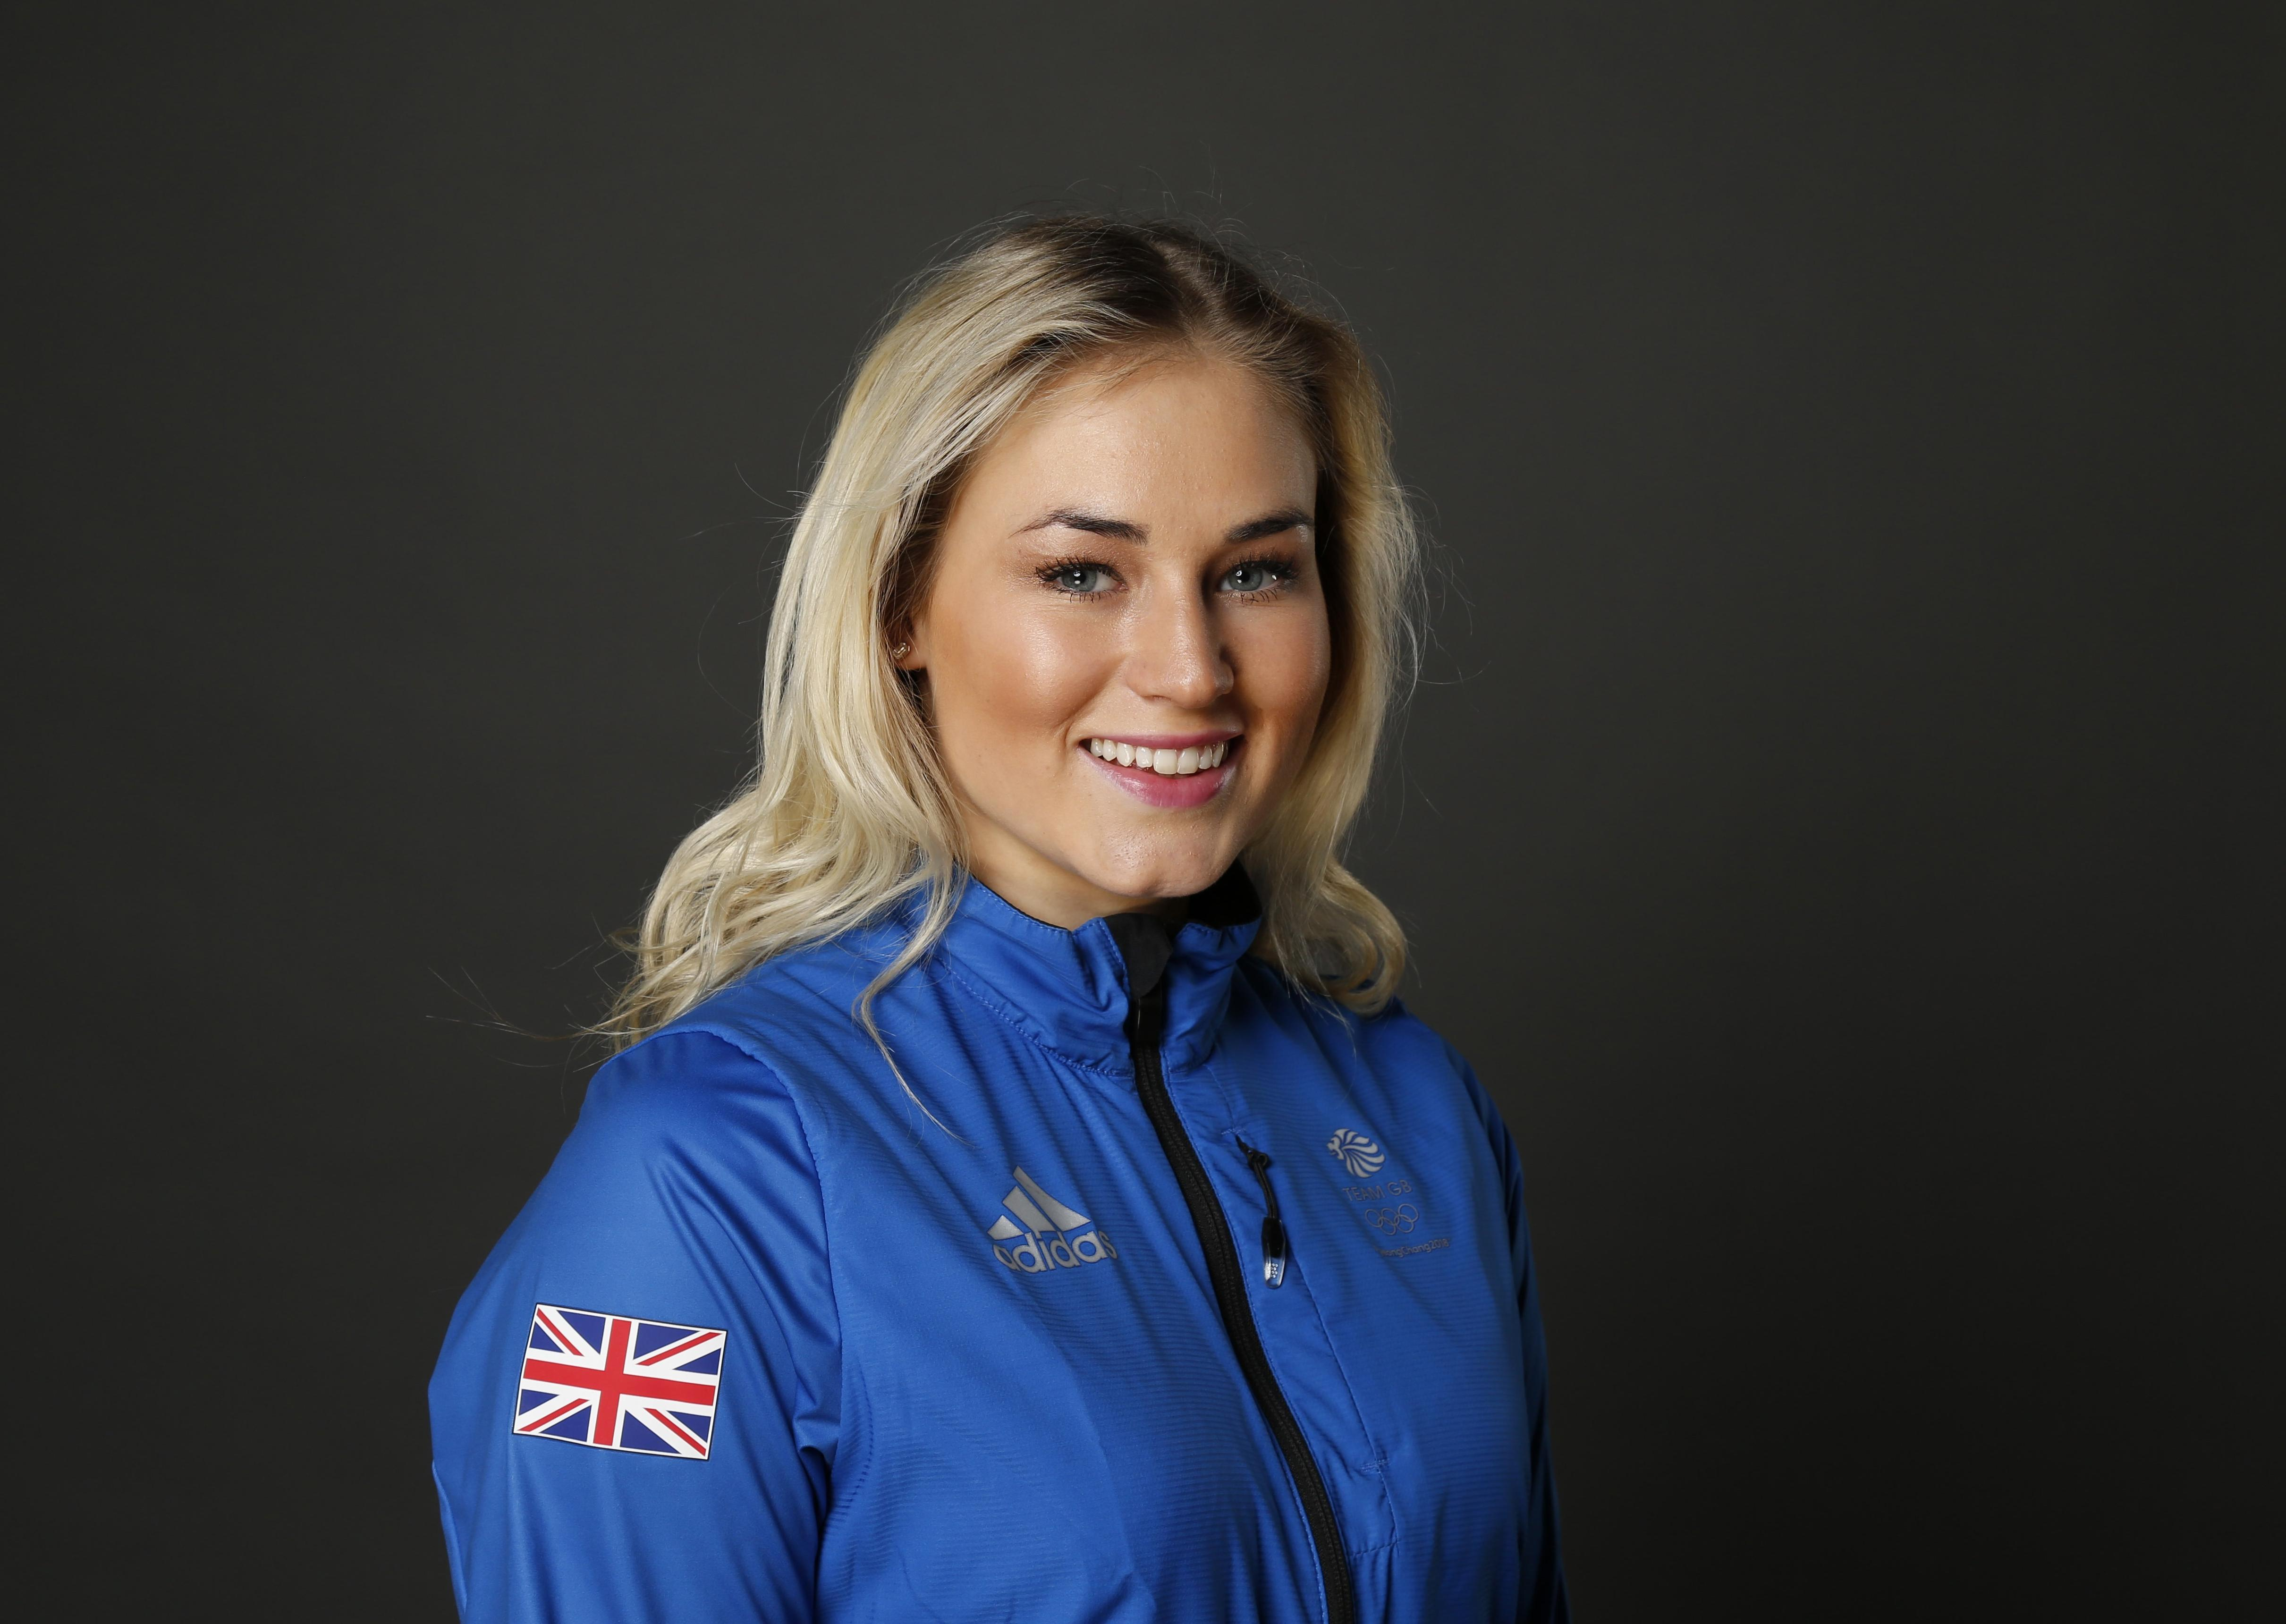 Brighouse snowboarder Ormerod takes a step closer to World Cup glory